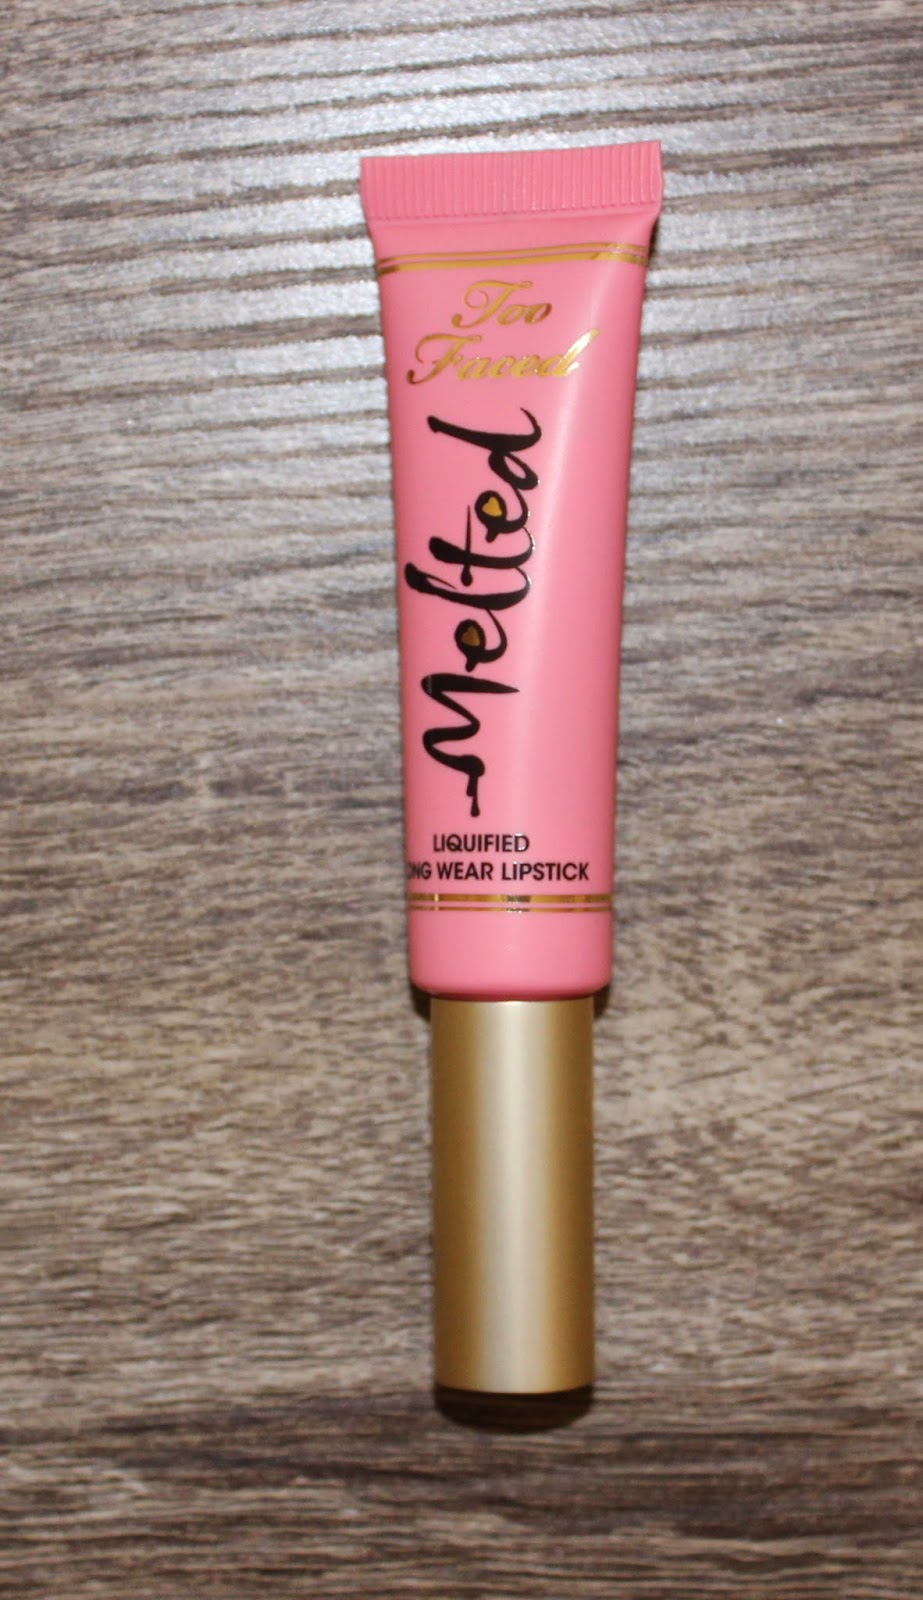 Too Faced Melted Liquified Long Wear Lipstick in Melted Frosting